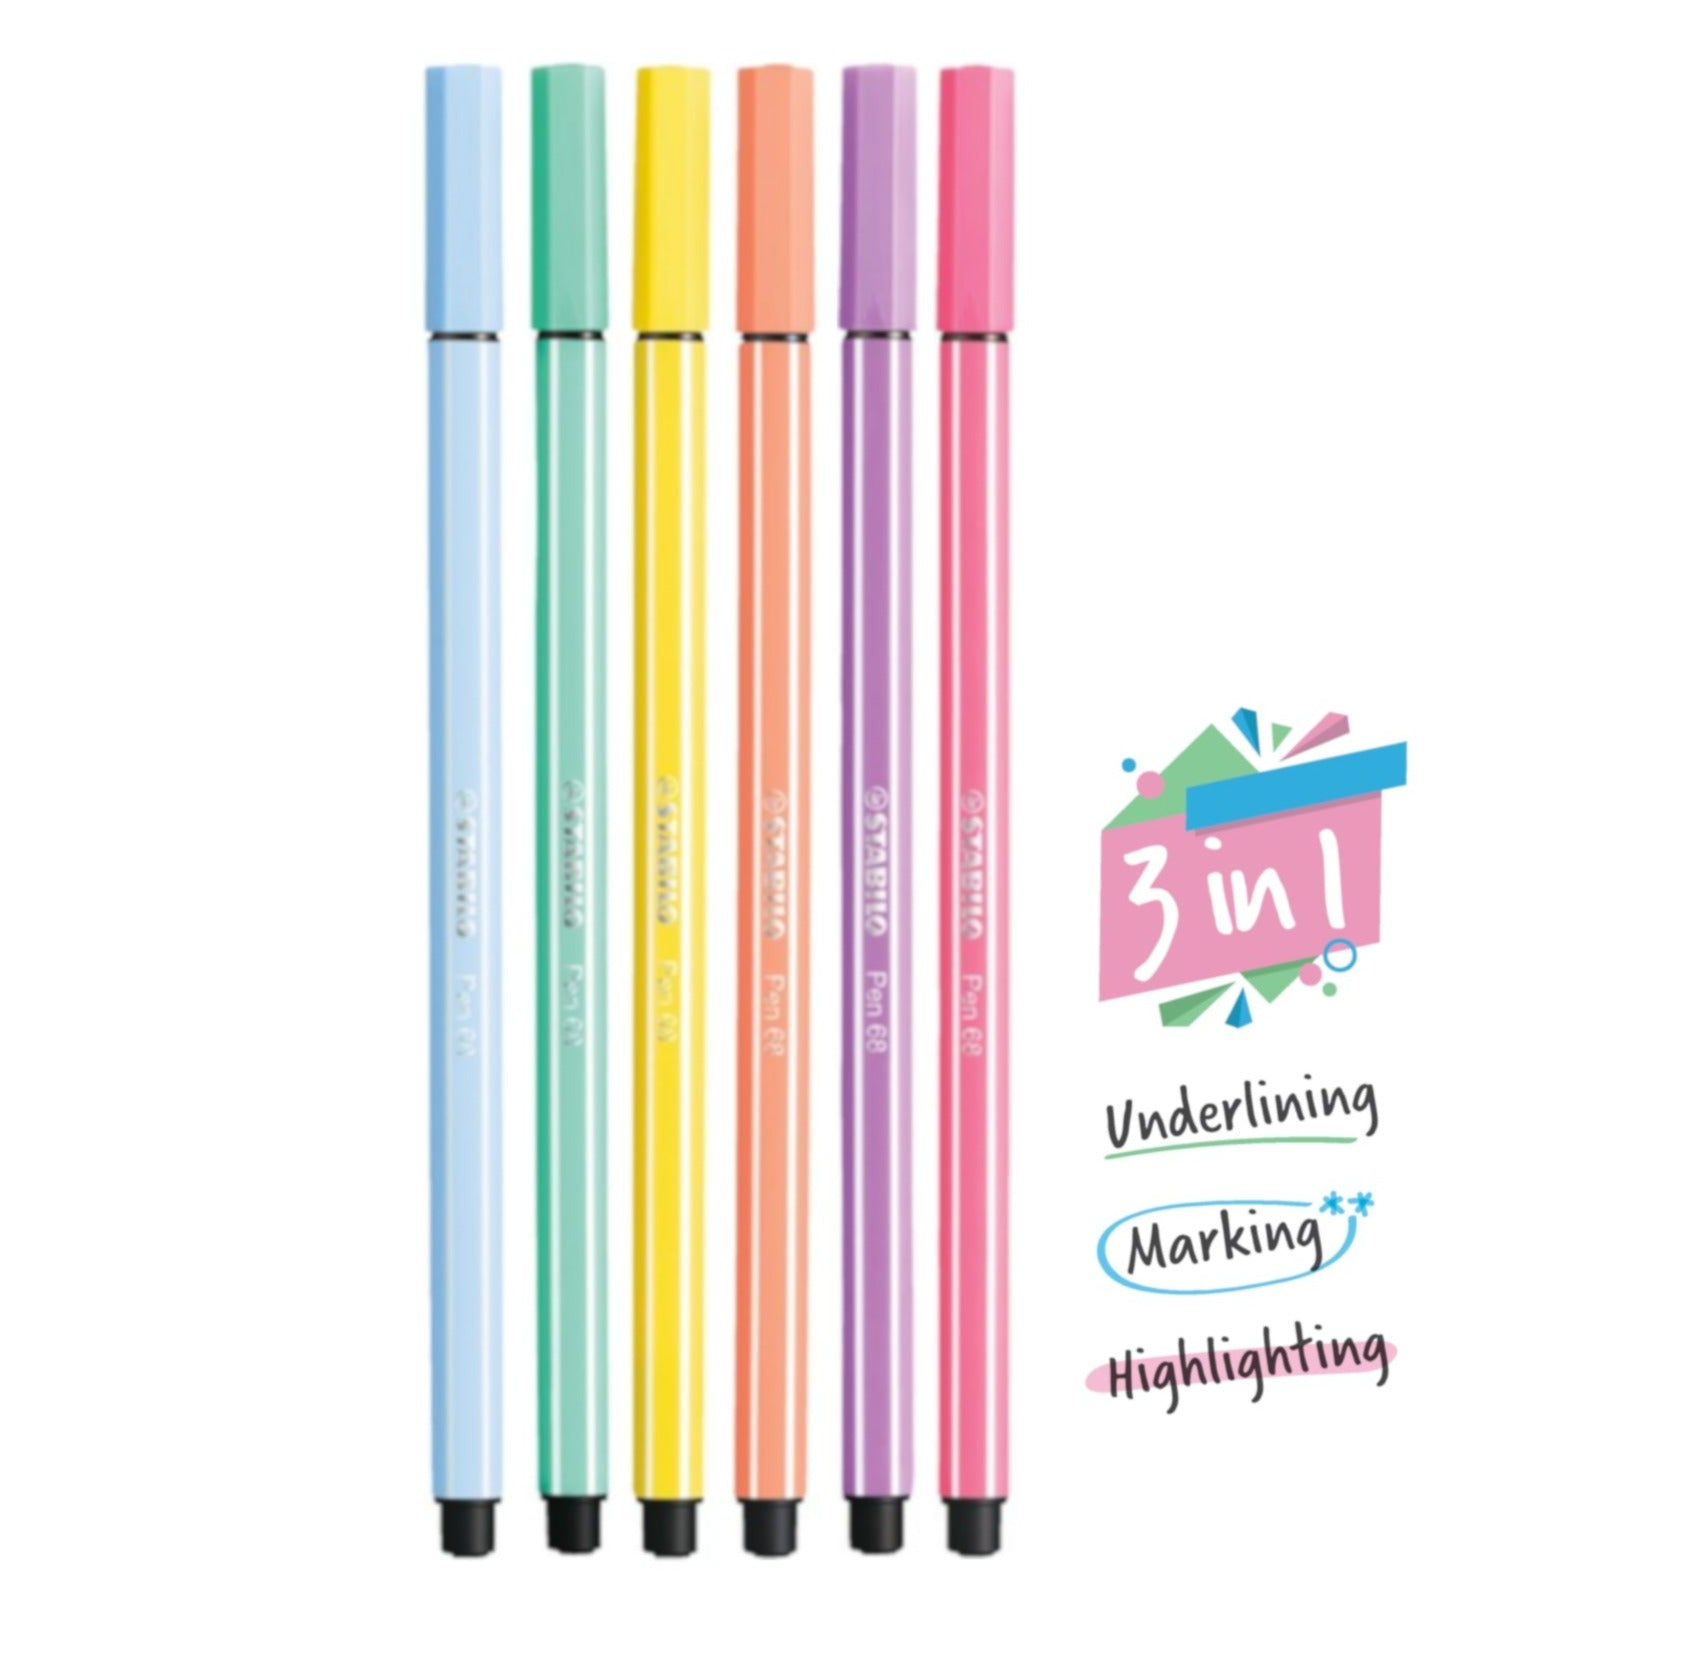 STABILO Pen 68 Marking Highlighter Pen And Text Markers - Pastel